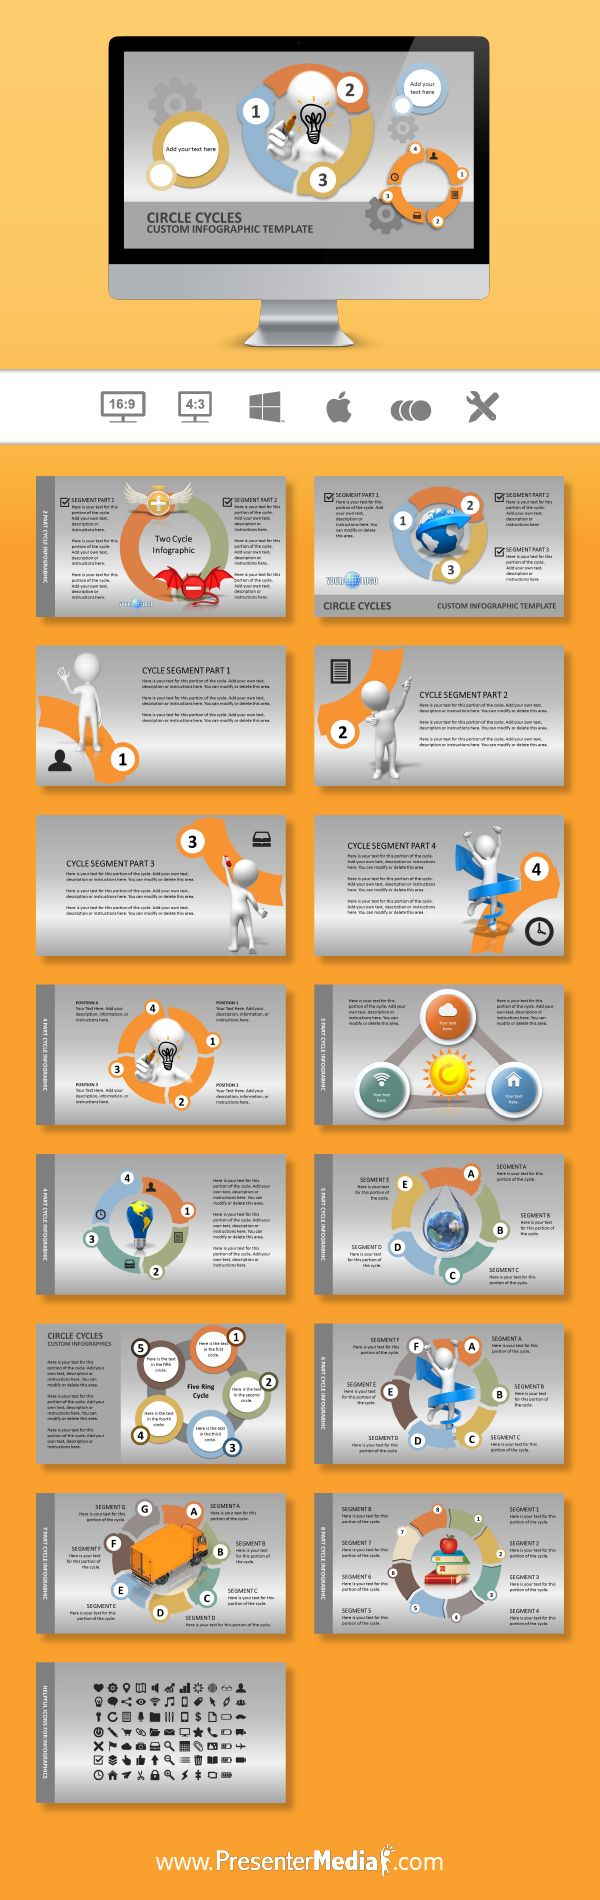 PowerPoint Circle Cycles Template #PowerPoint #Templates #Presentations http://bit.ly/2bj6O7F